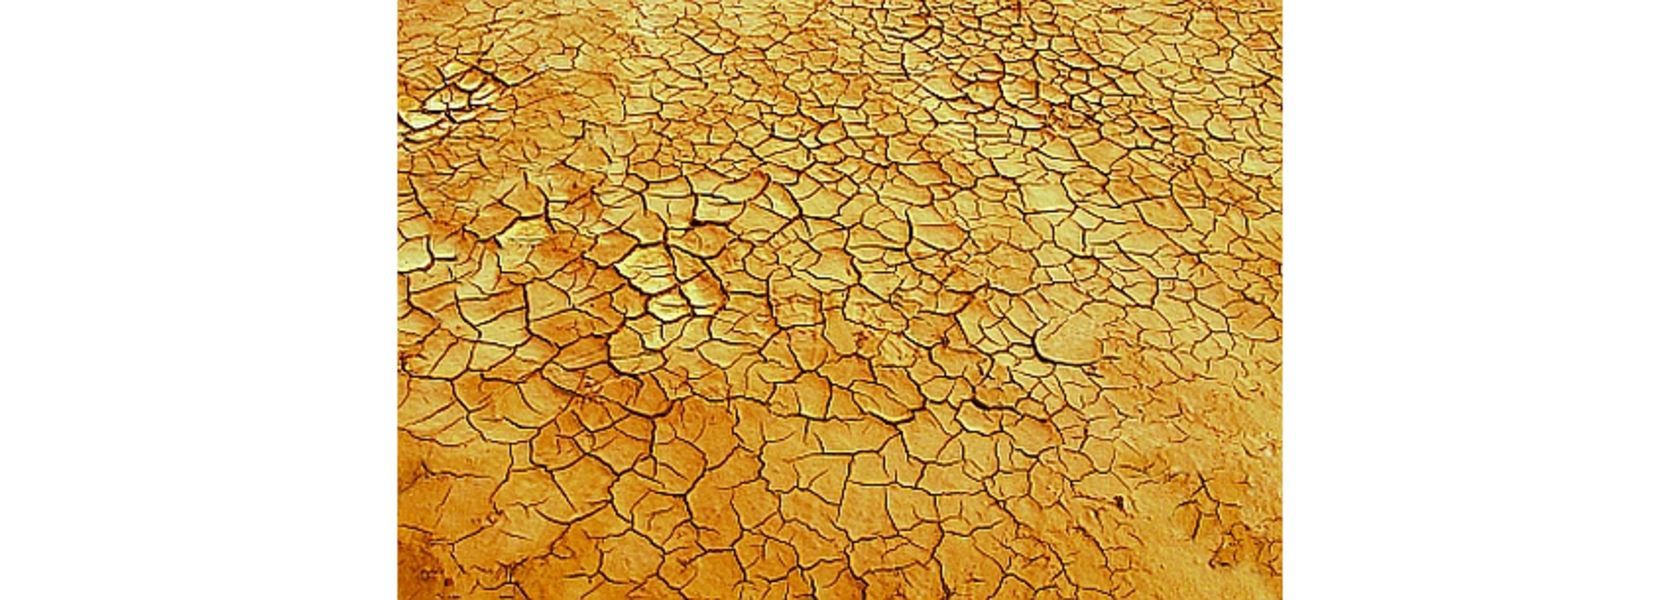 $12m in rebates to improve drought resilience